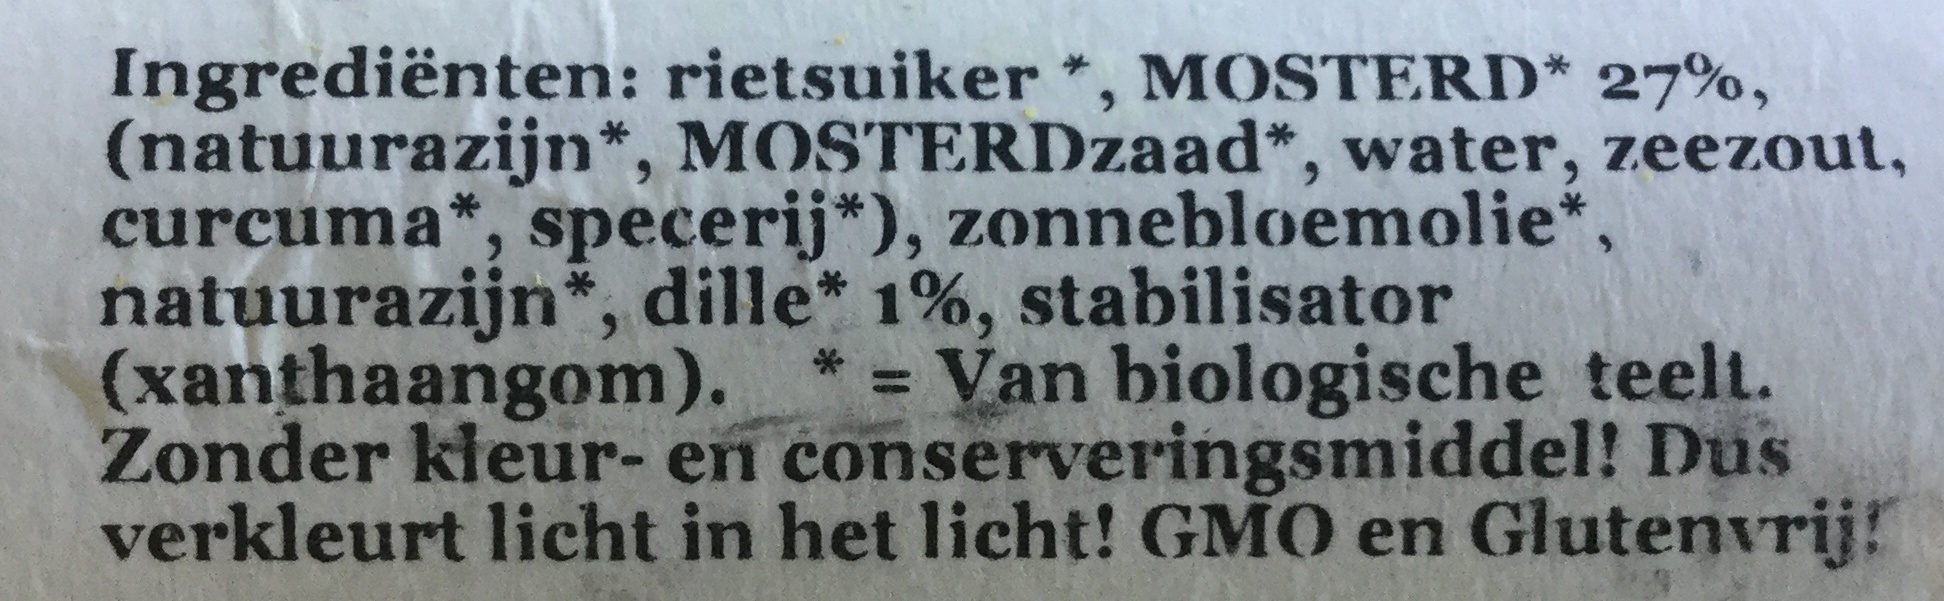 Mosterd dille dressing - Ingredients